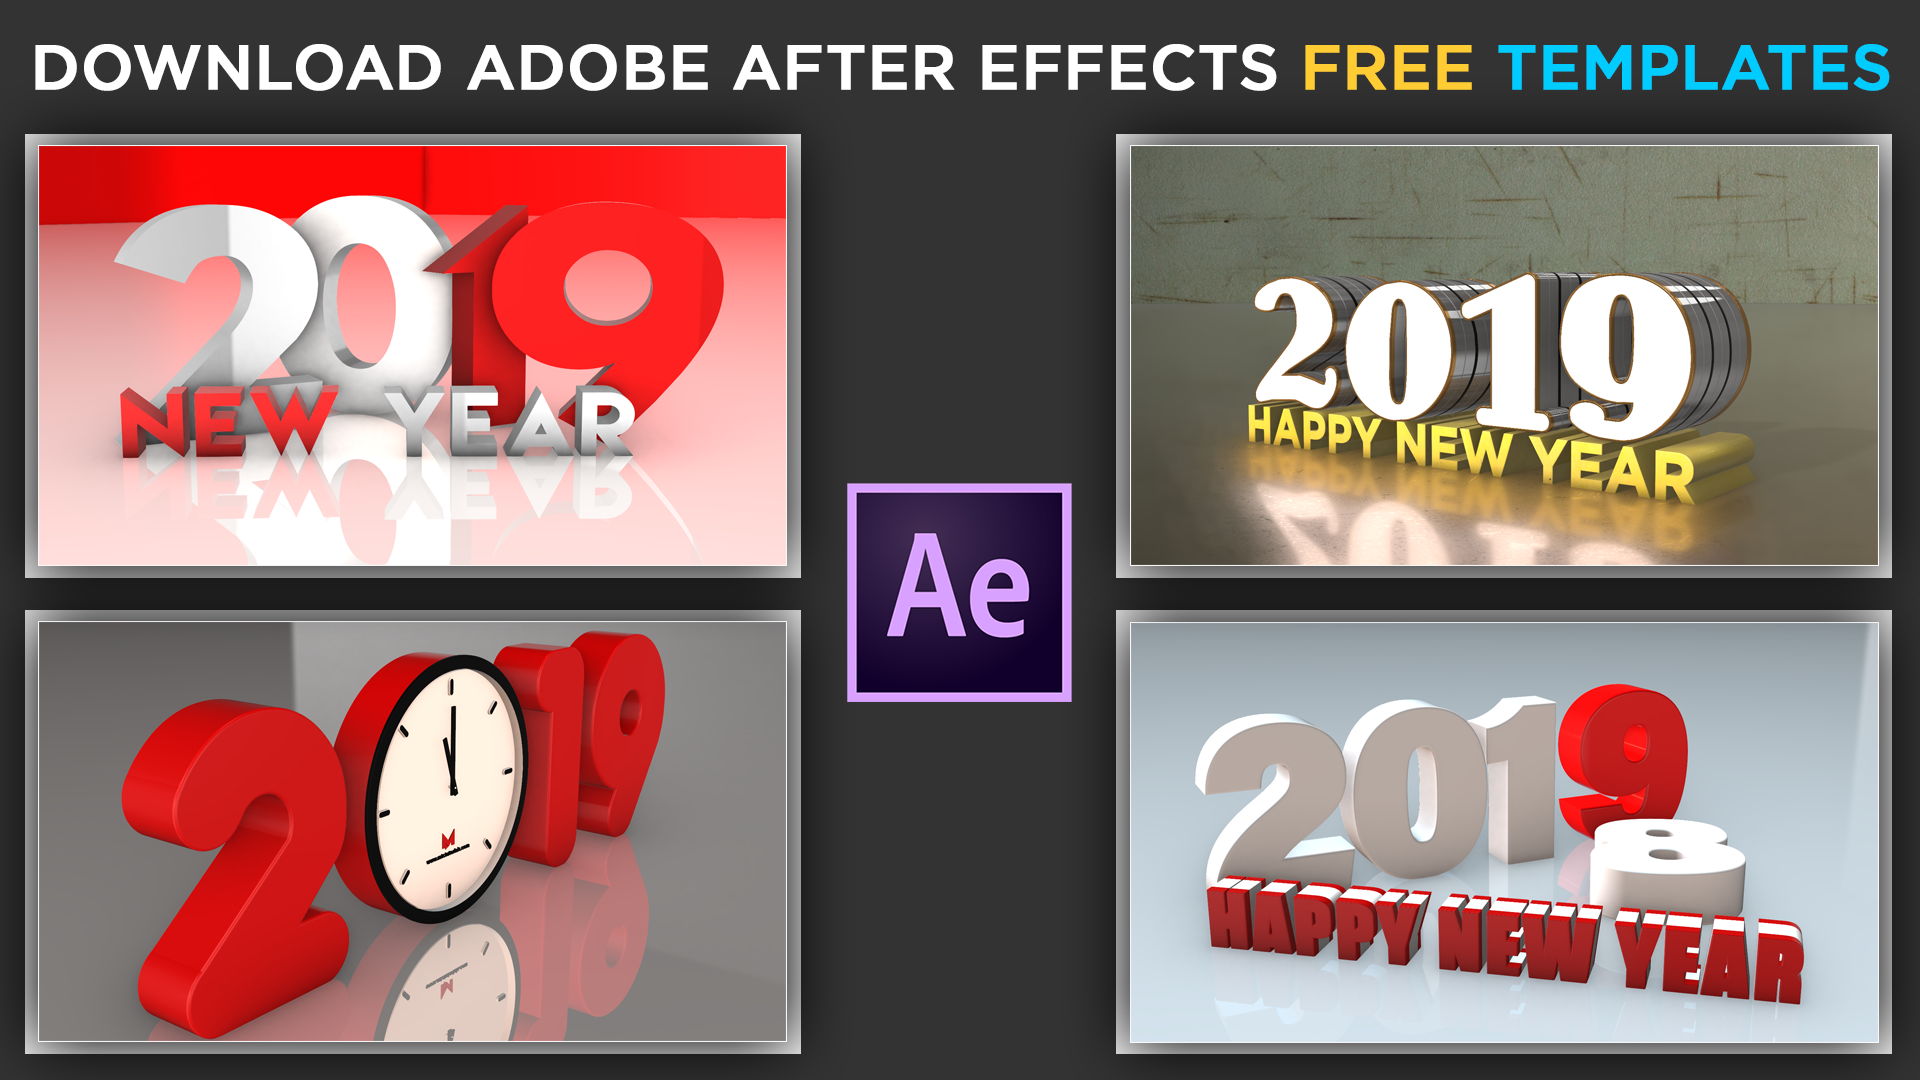 after effects templates free download - YouTube